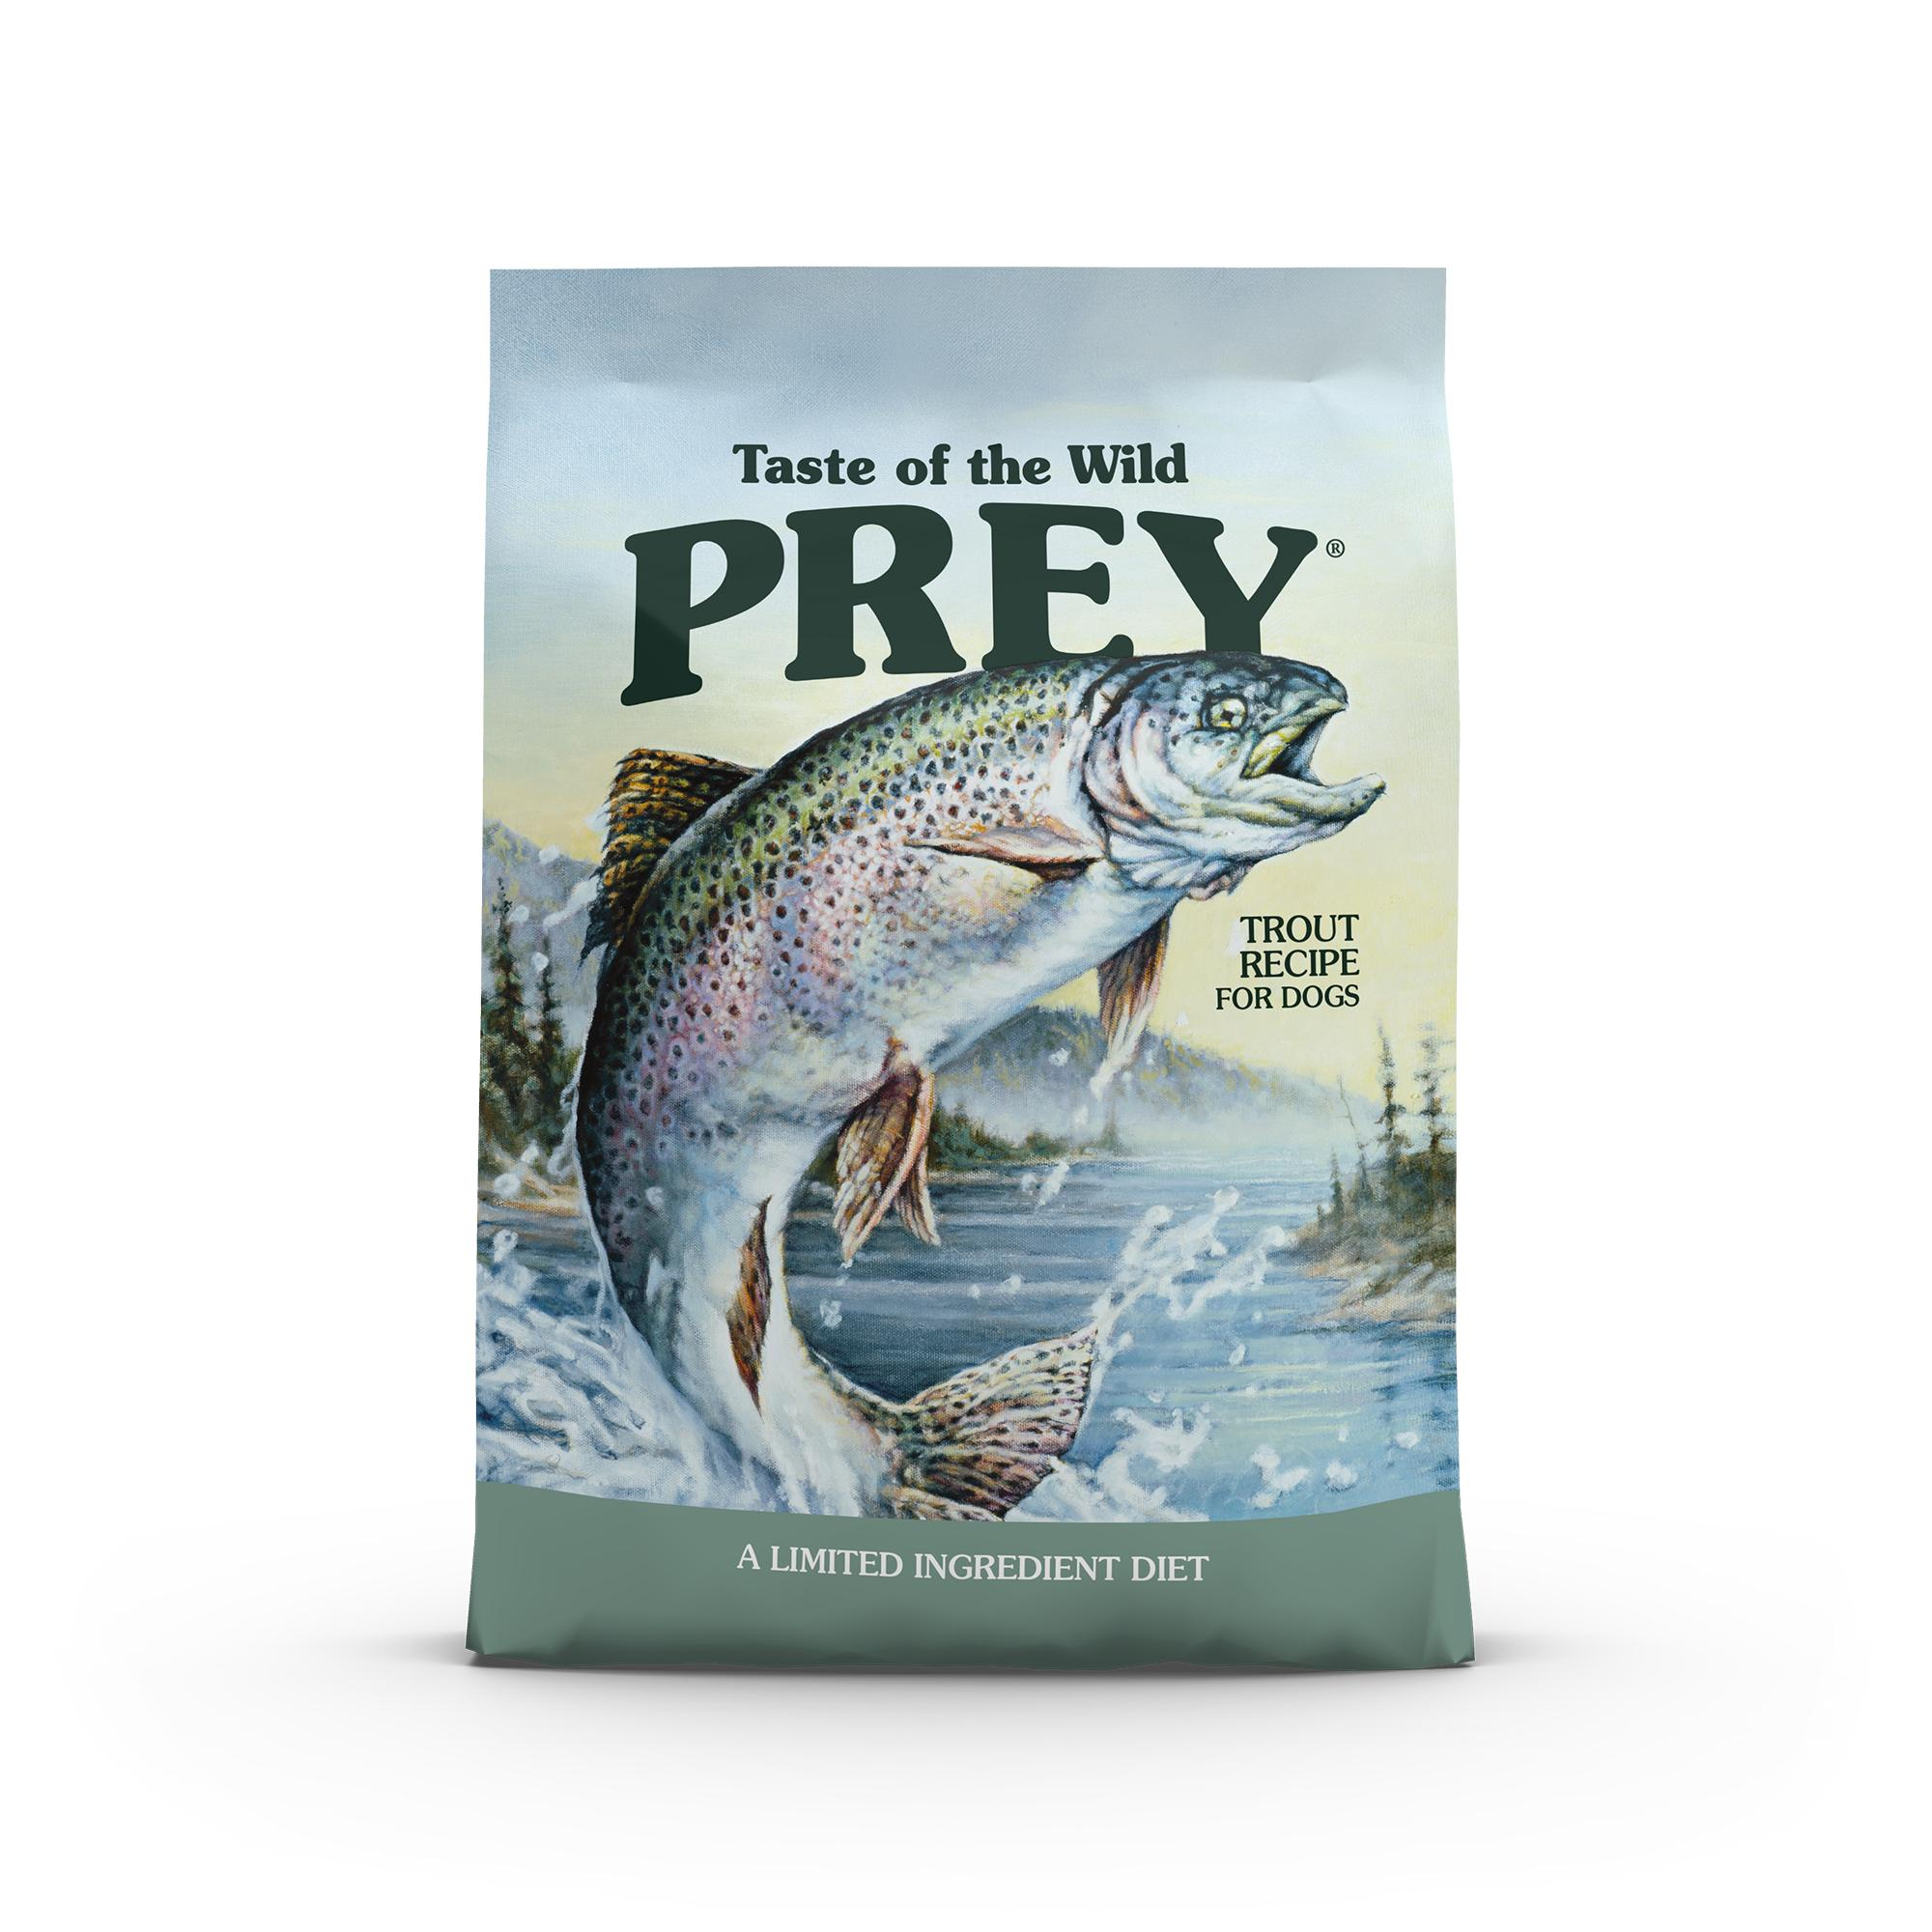 Taste of the Wild Prey Trout Limited Ingredient Formula Grain-Free Dry Dog Food Image